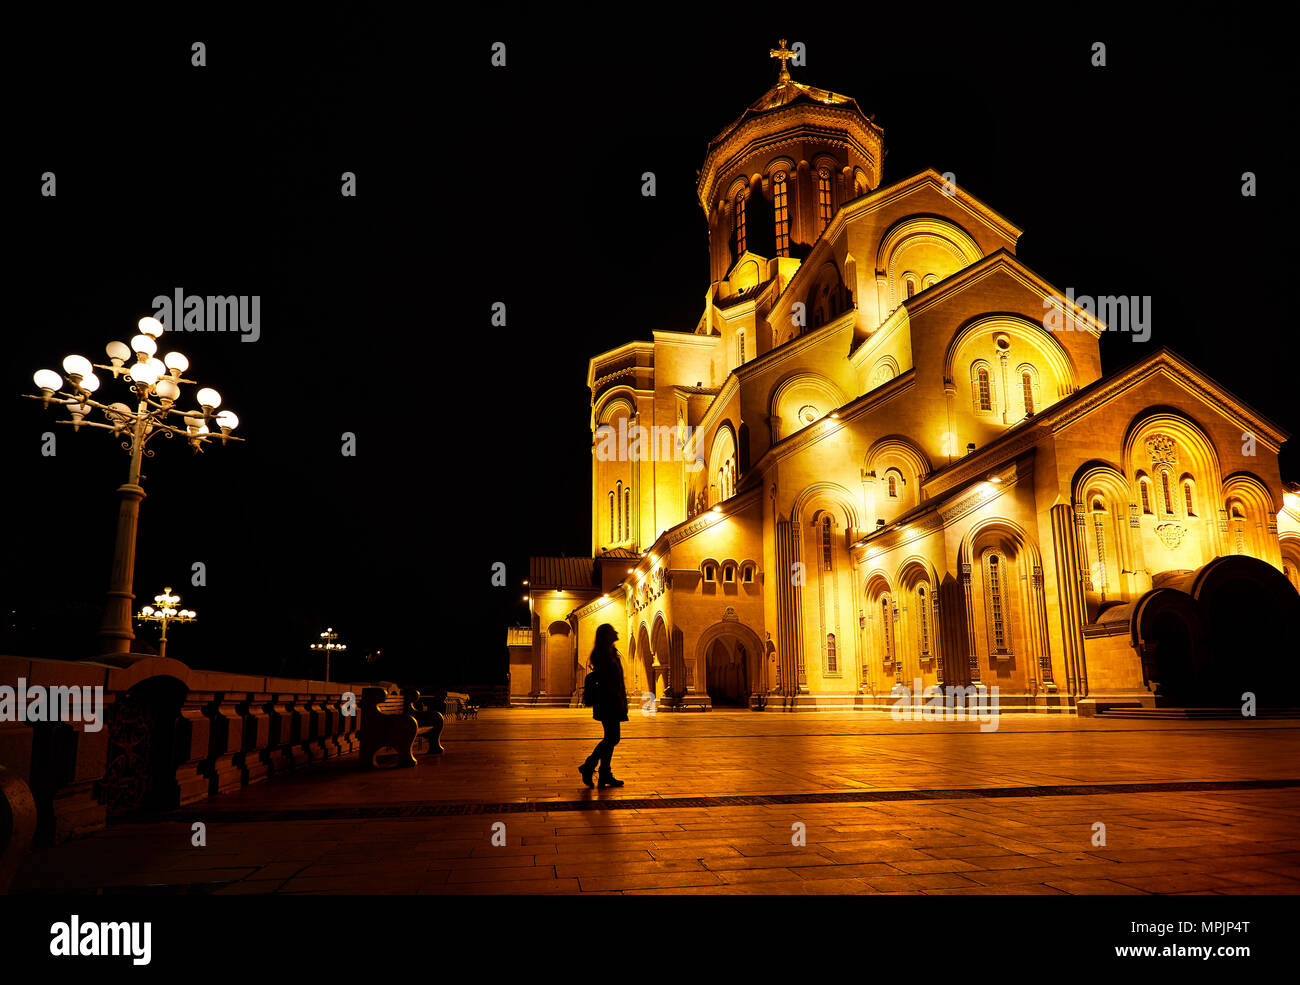 Woman silhouette near The Holy Trinity Cathedral or Tsminda Sameba Church at night in Tbilisi, Georgia - Stock Image